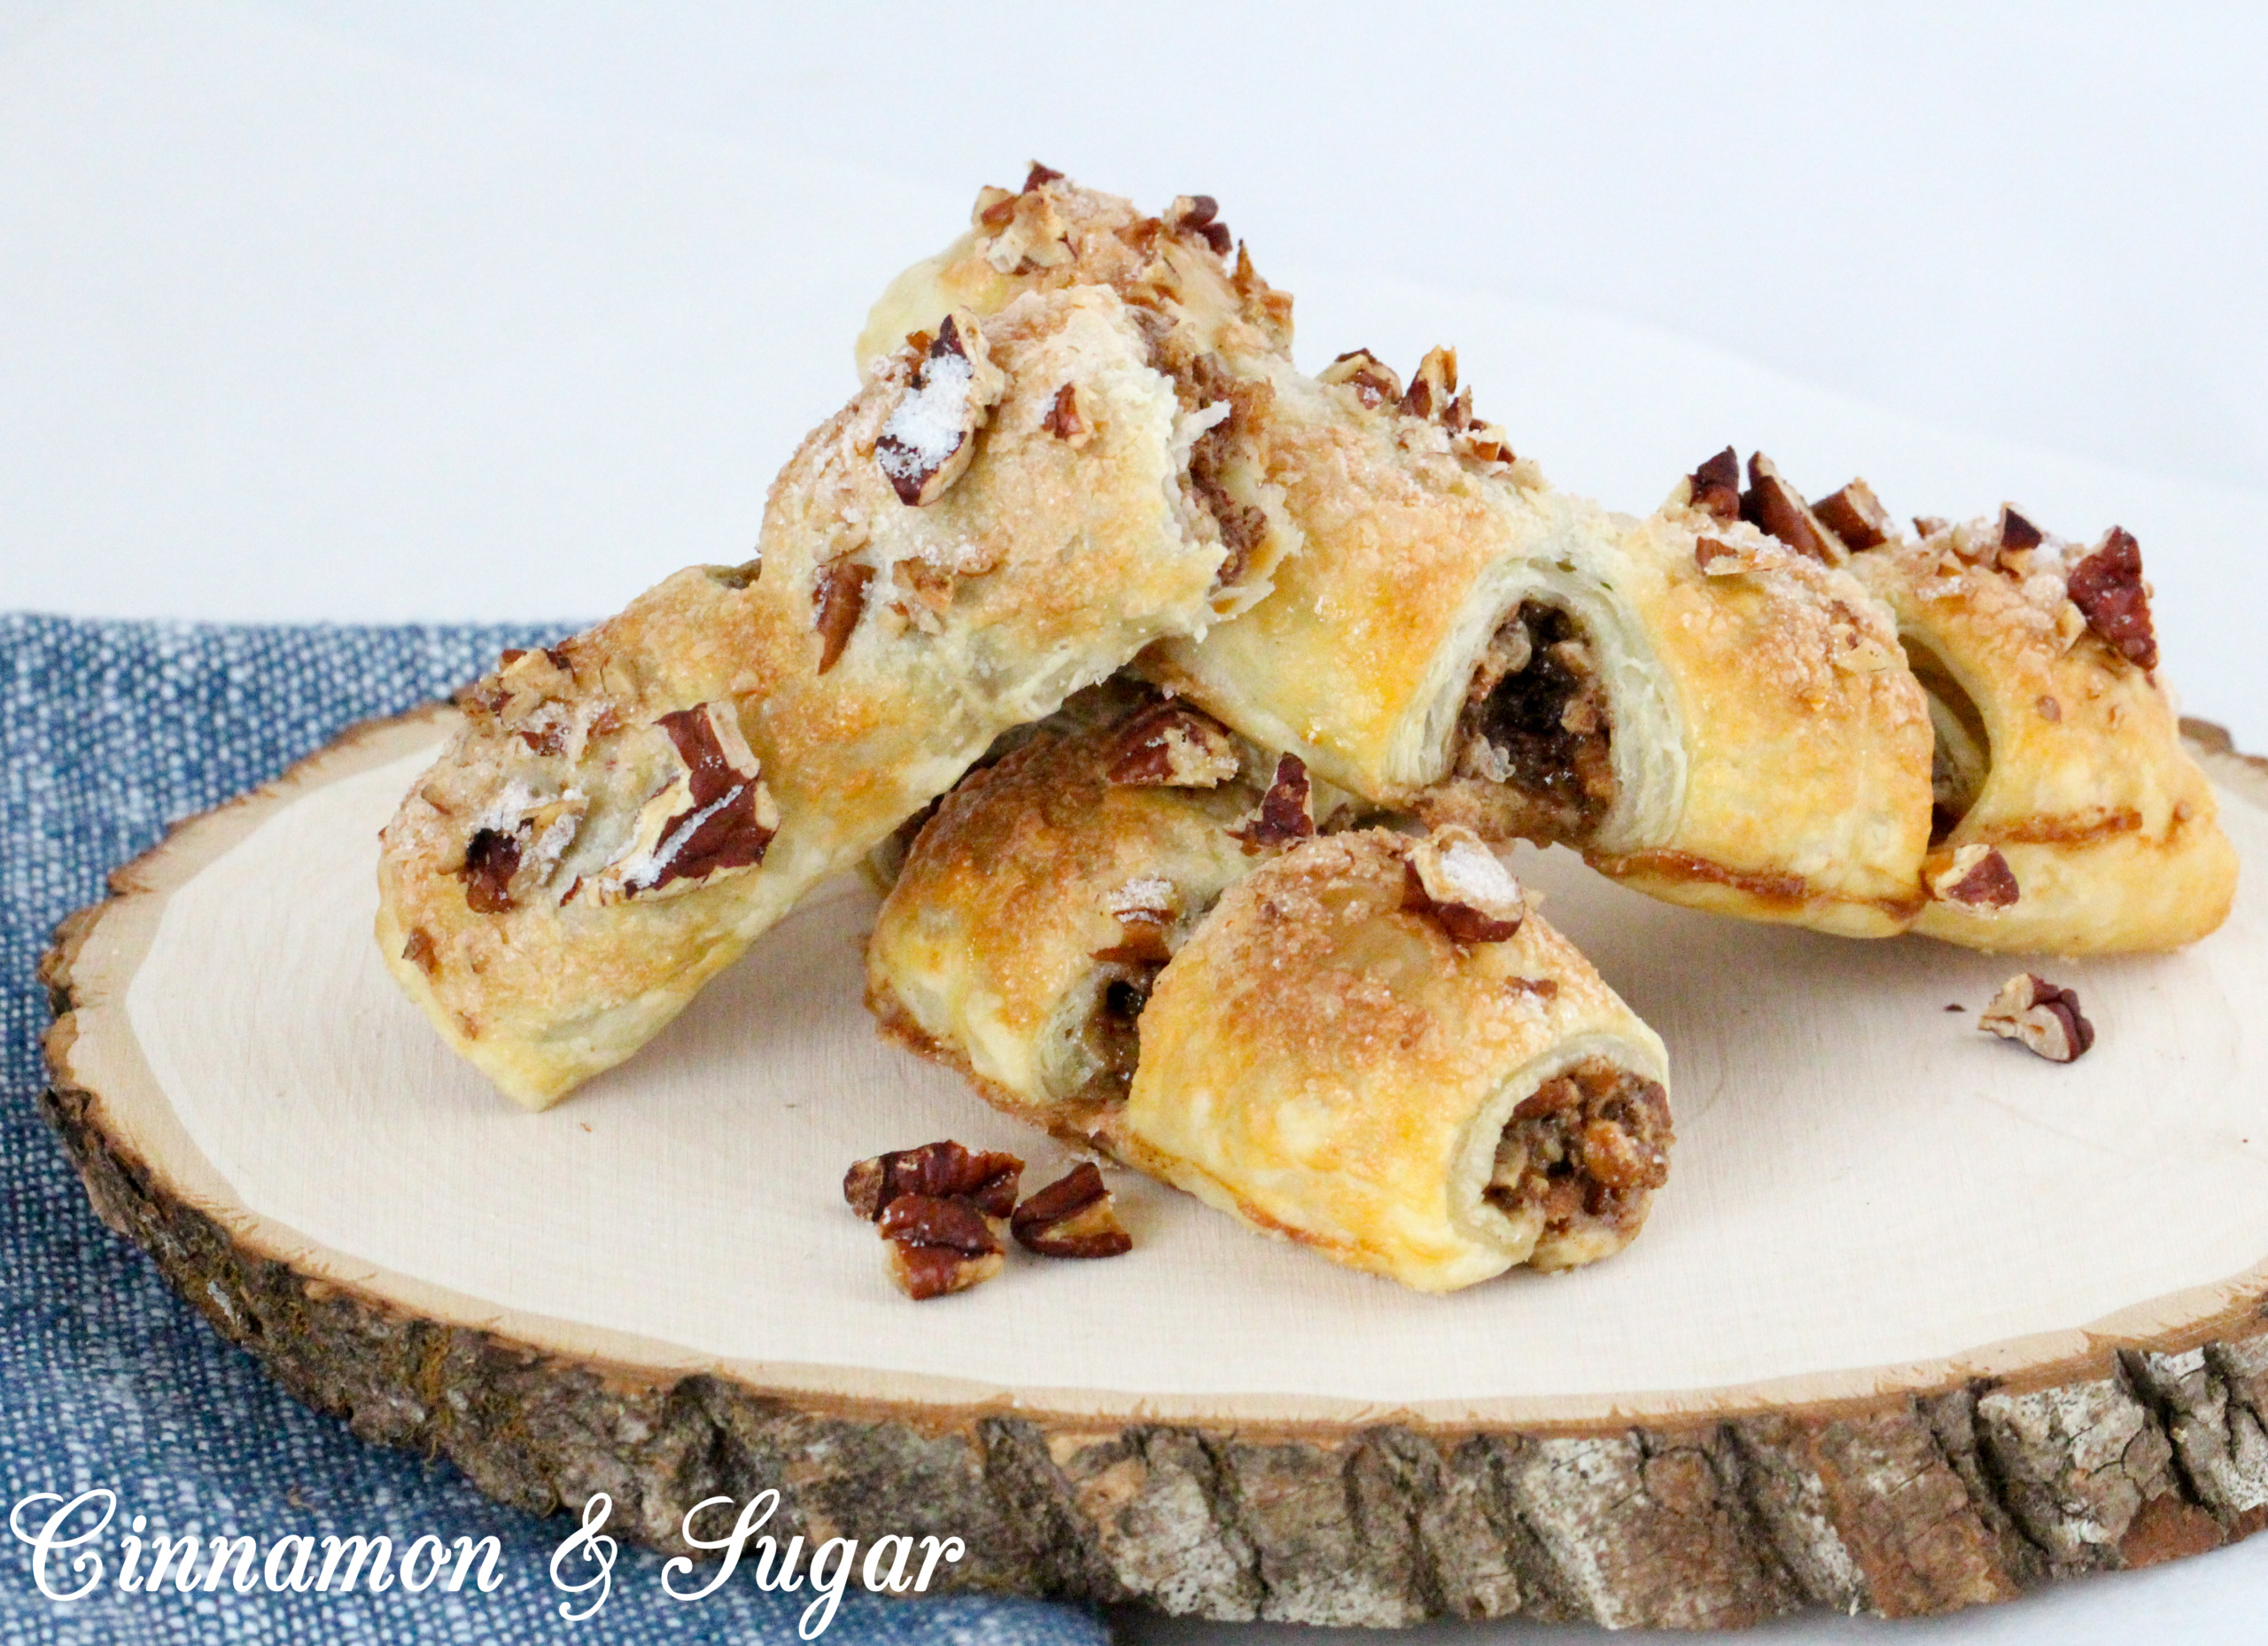 With crunchy, buttery pecans, an ample amount of cinnamon, and pre-made puff pastry, these Bear Claws are a tasty and easy addition to any breakfast, brunch, or coffee break! Recipe shared with permission granted by Maddie Day, author of MURDER AT THE TAFFY SHOP.